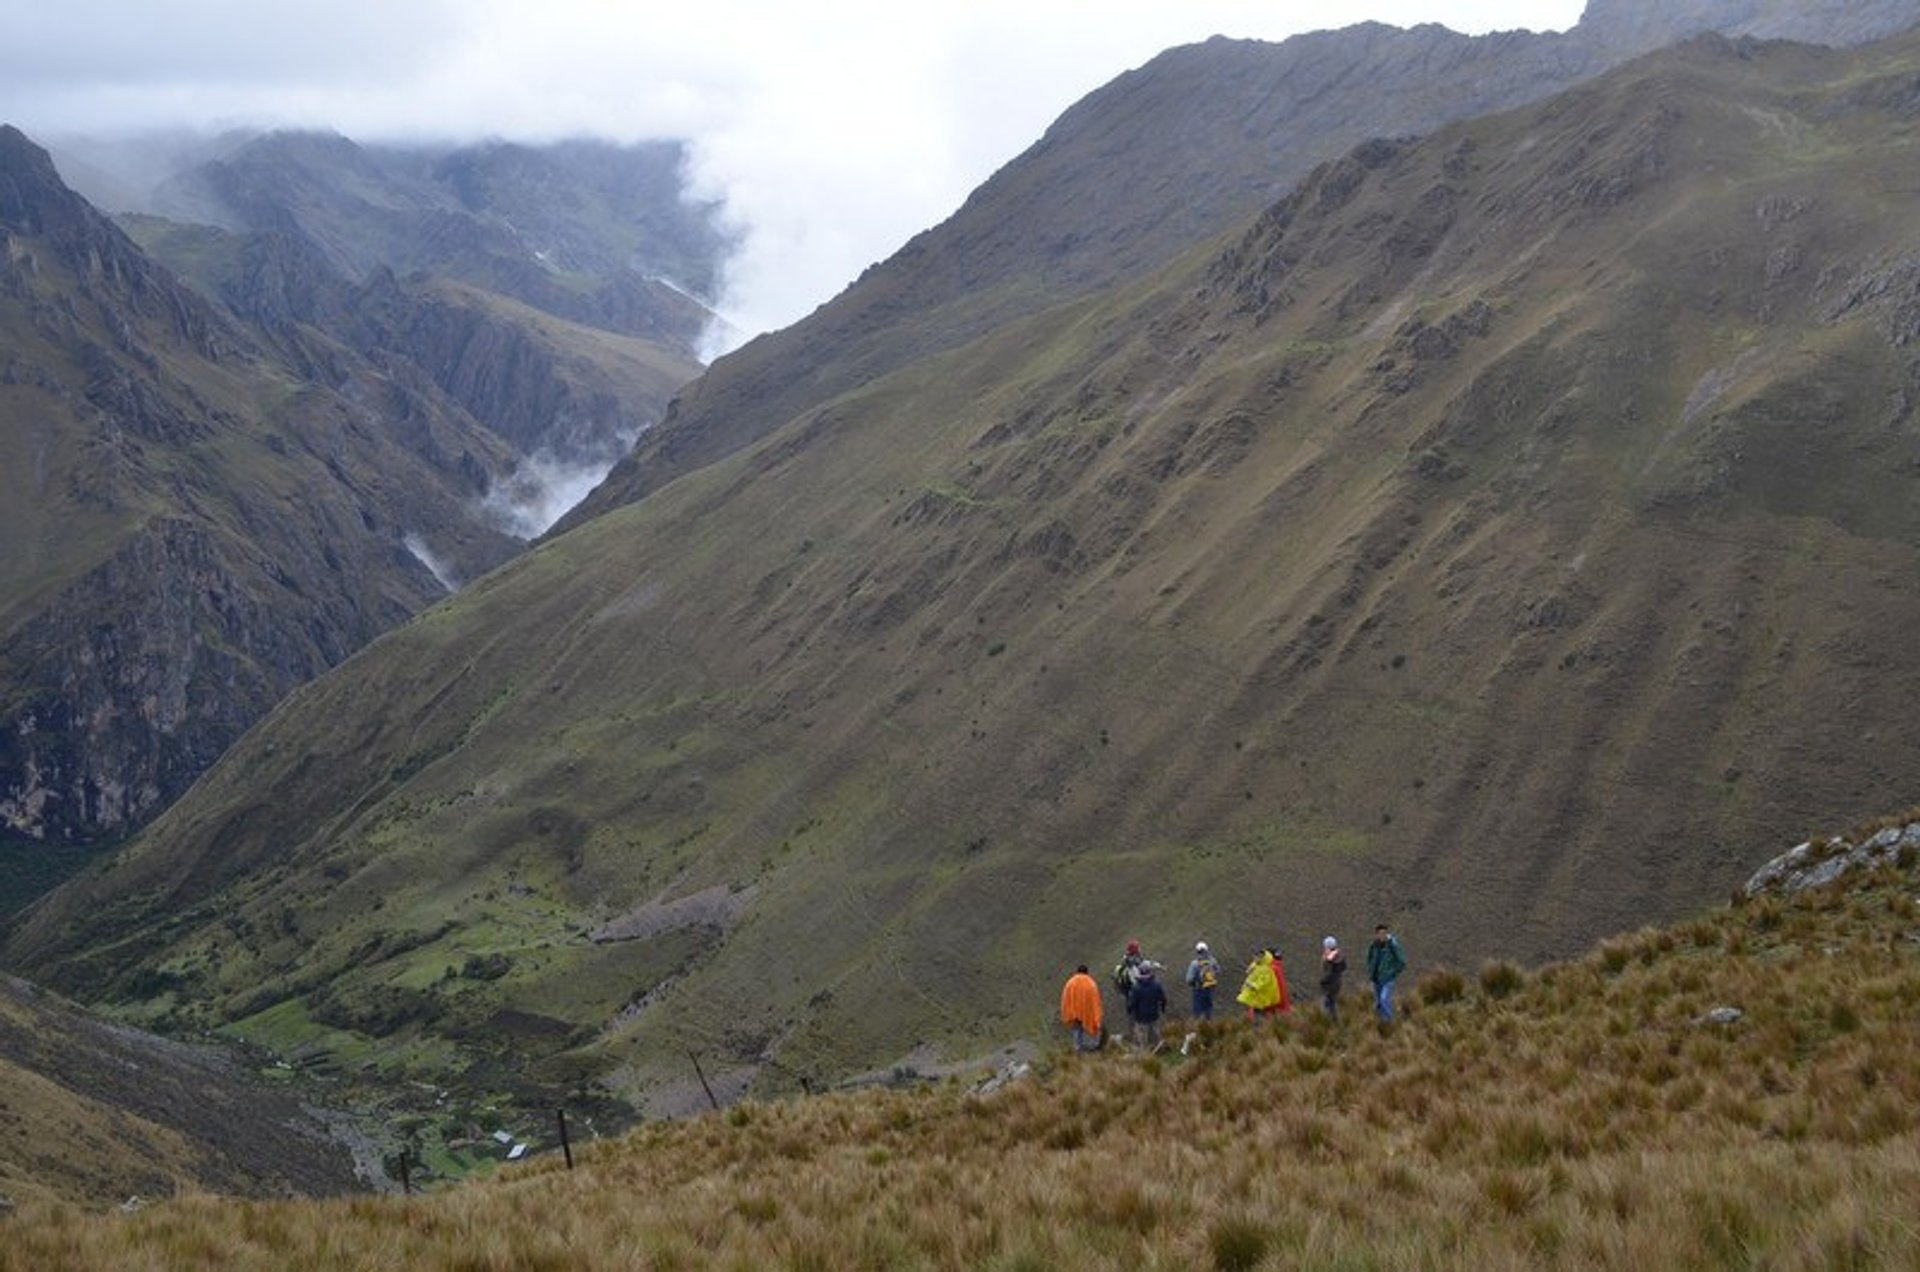 Trekking to Pongo de Mainique in Peru - Best Season 2020